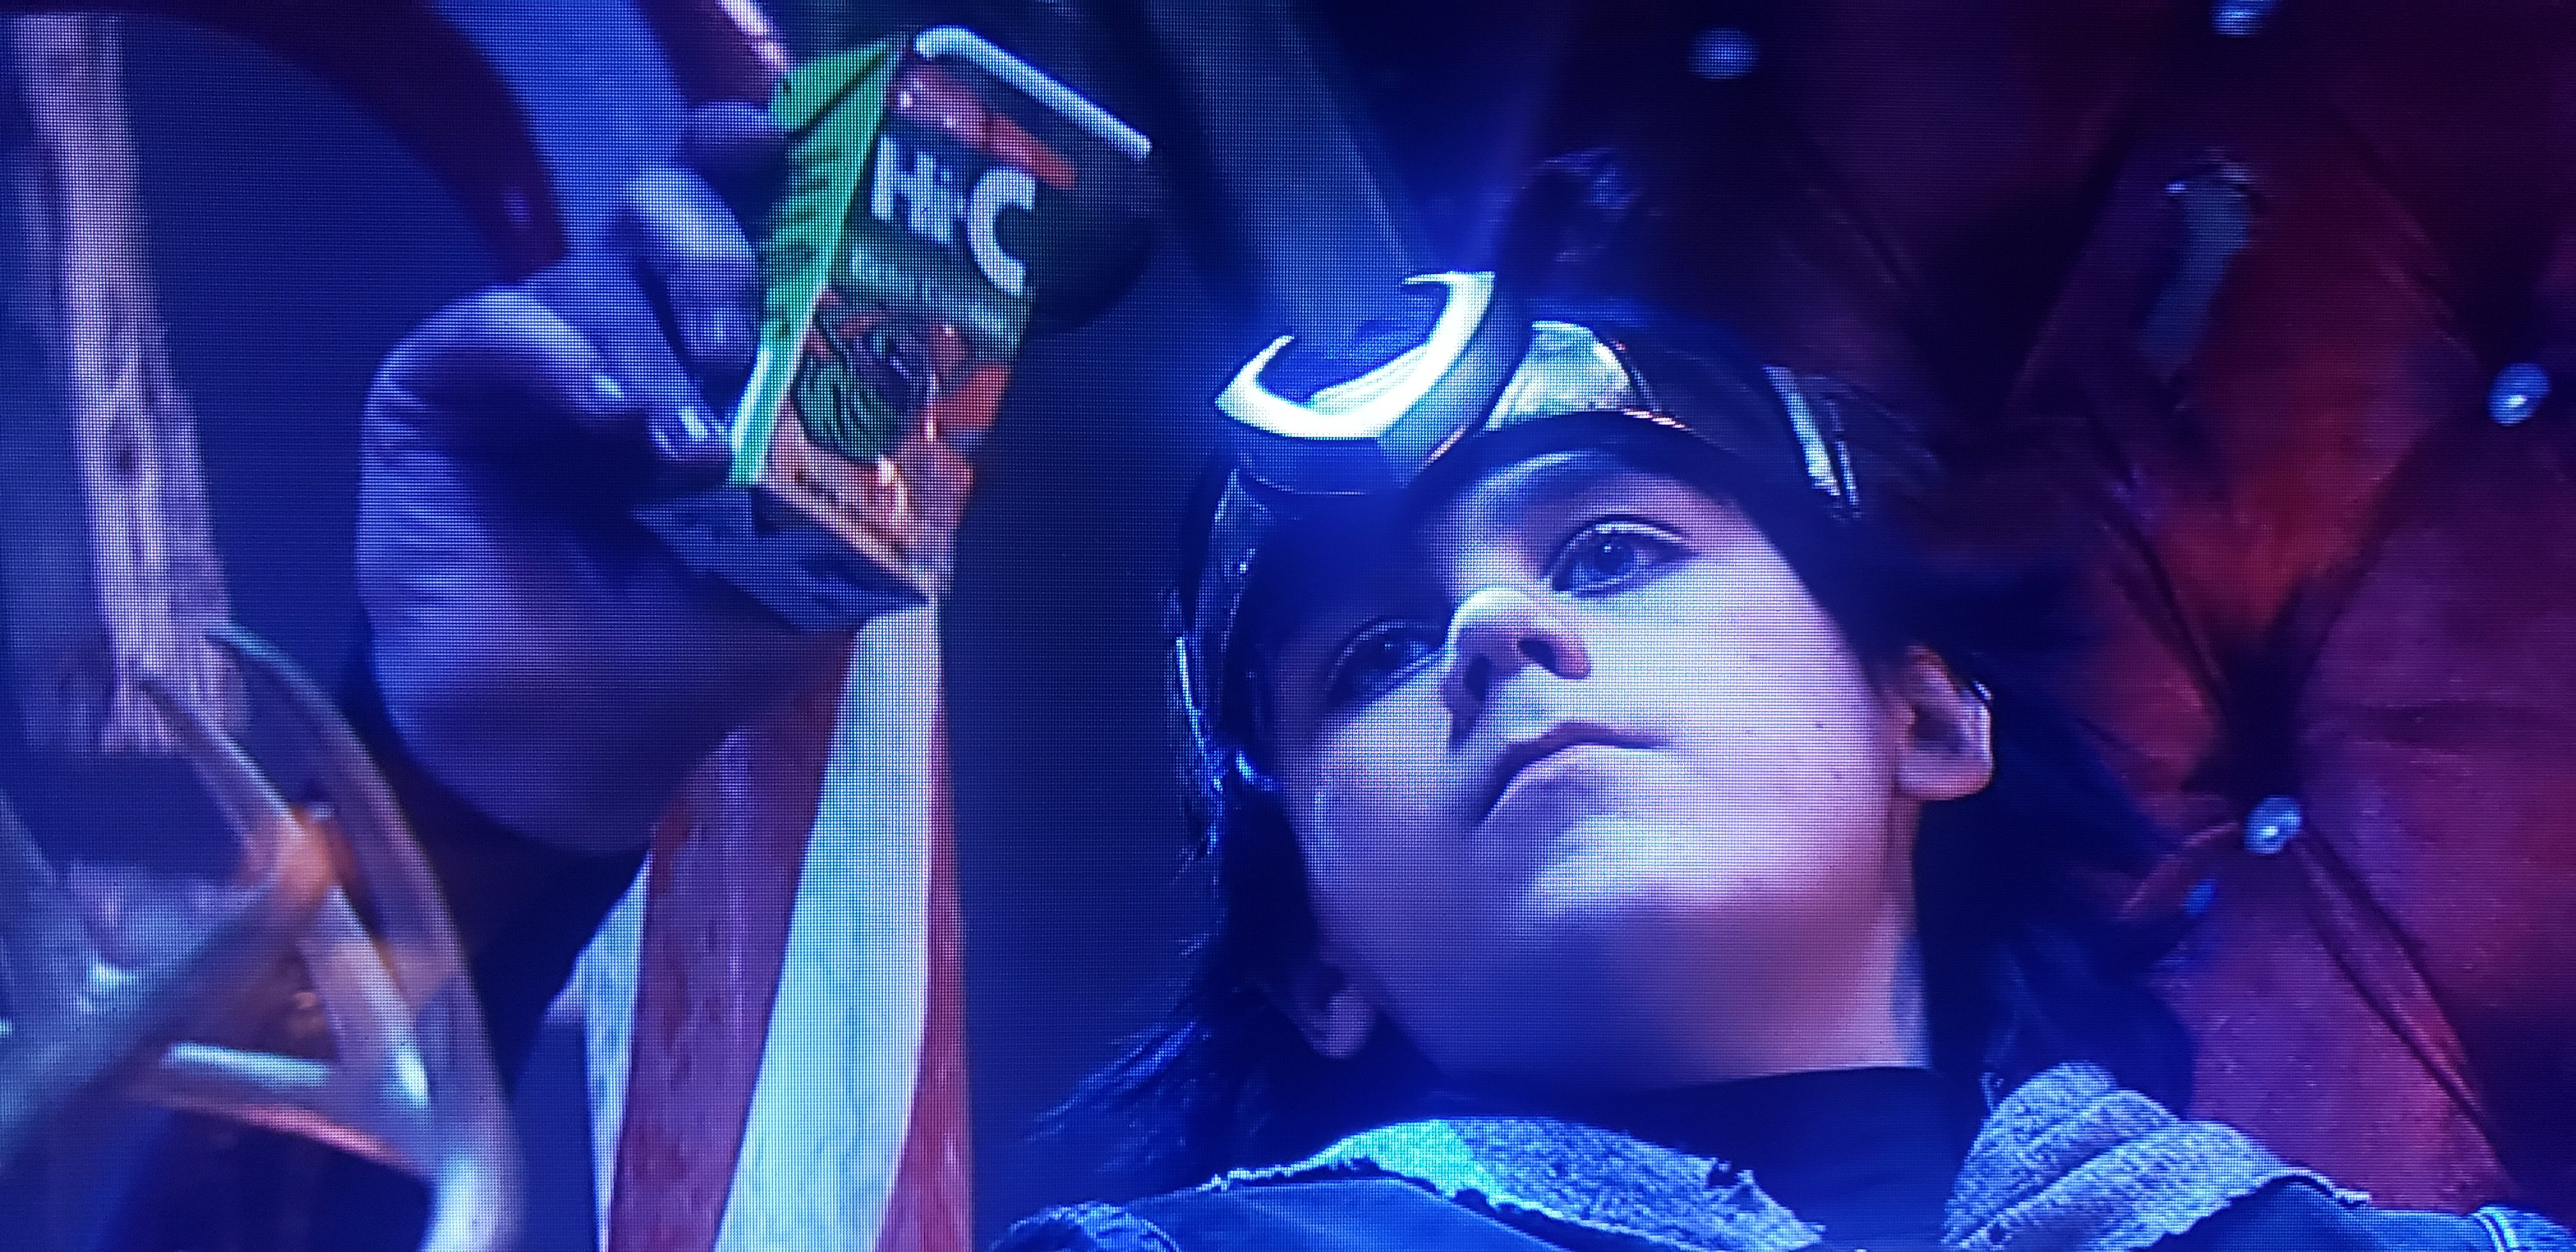 """mrbijou33 on Twitter: """"Just watched episode 5 of Loki and what grabbed my attention was Kid Loki was drinking some Hi-C Ecto Cooler!🤘😊 https://t.co/YCv5IFPoKQ"""" / Twitter"""